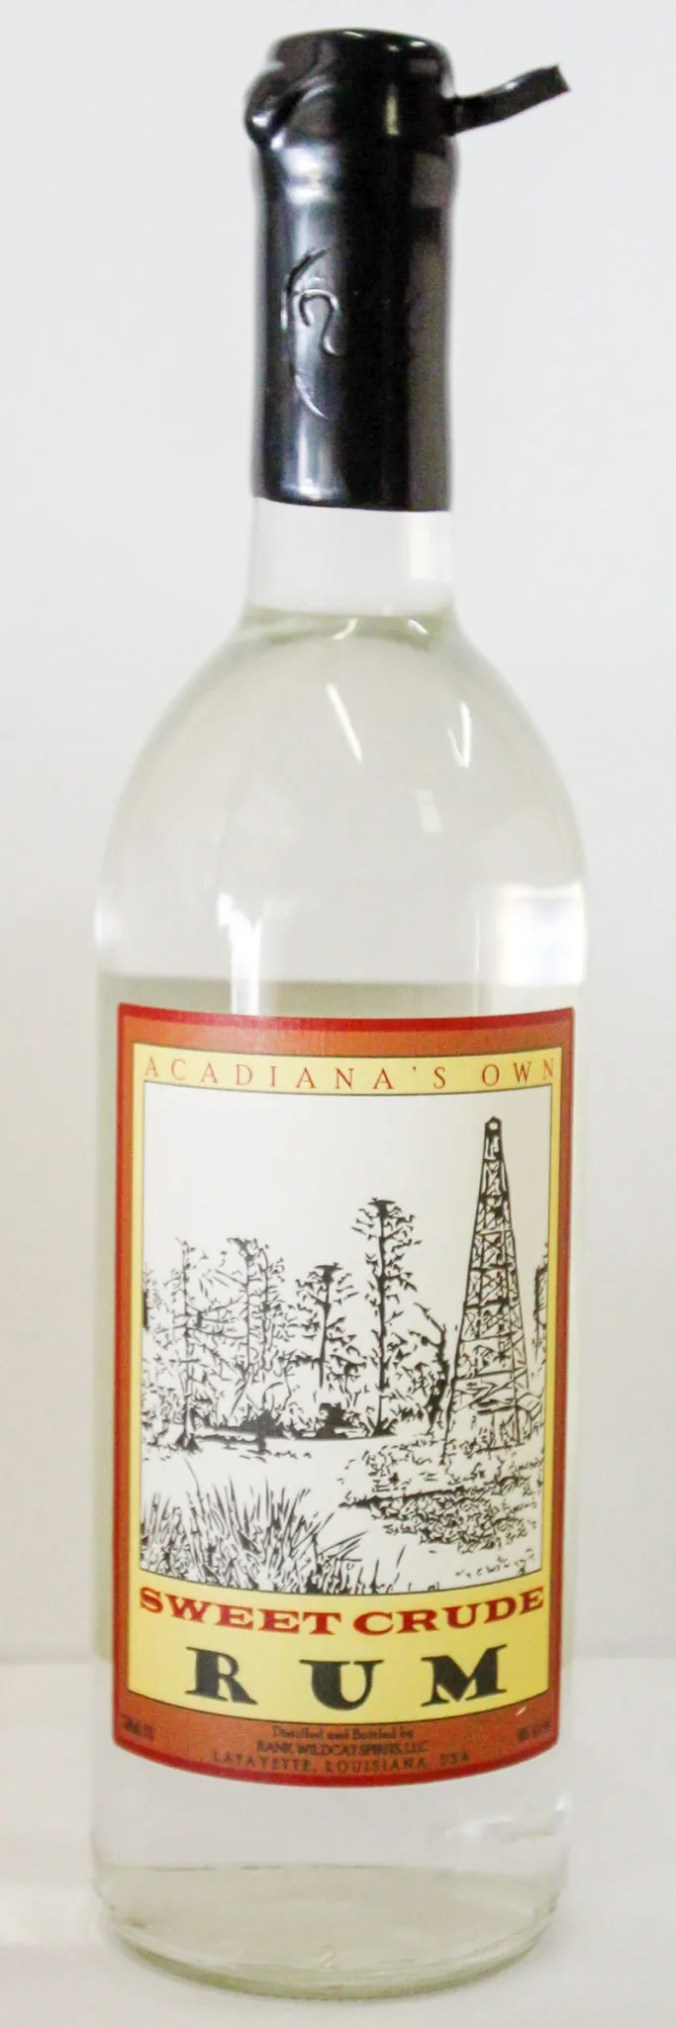 Acadiana's Own Sweet Crude Rum from Louisiana